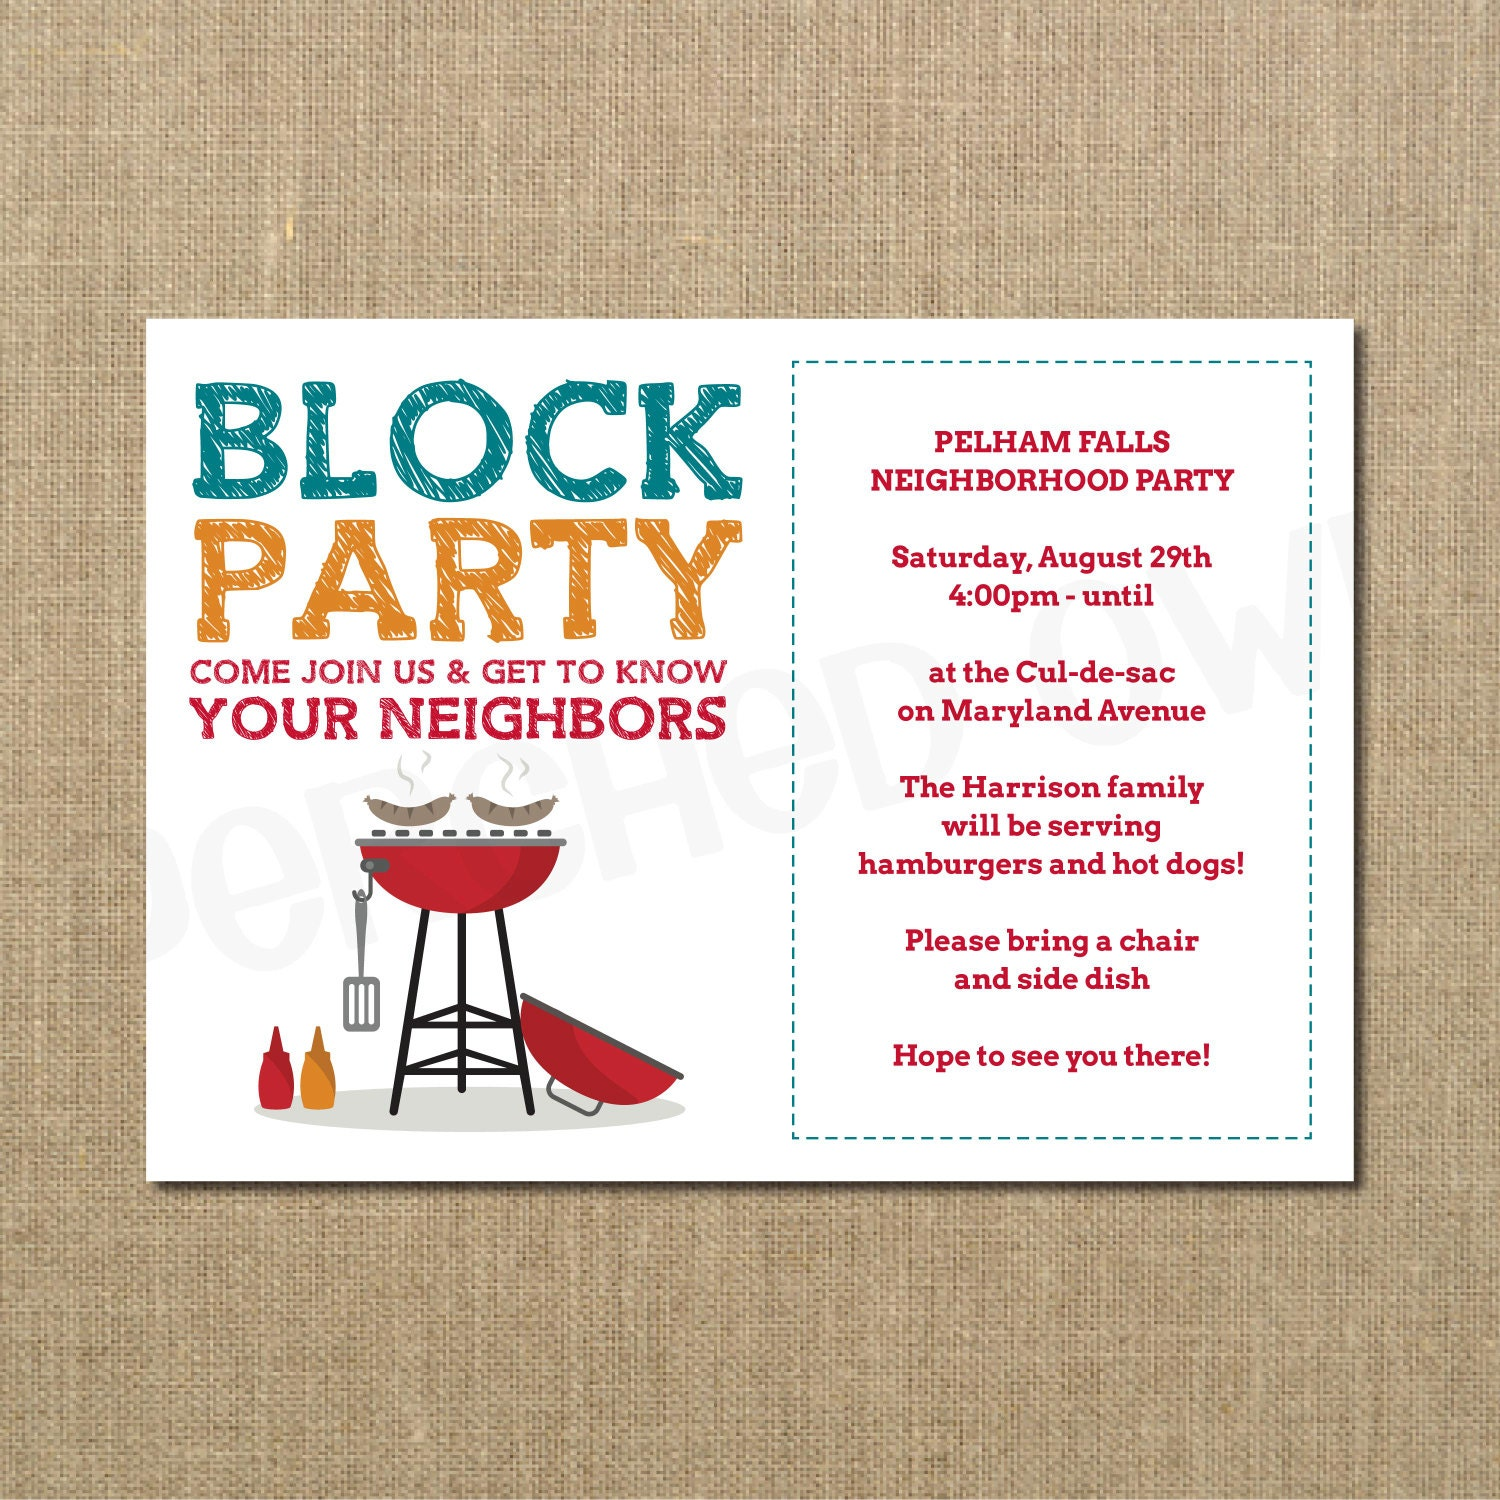 Neighborhood block party cookout invitation grilling out zoom monicamarmolfo Choice Image